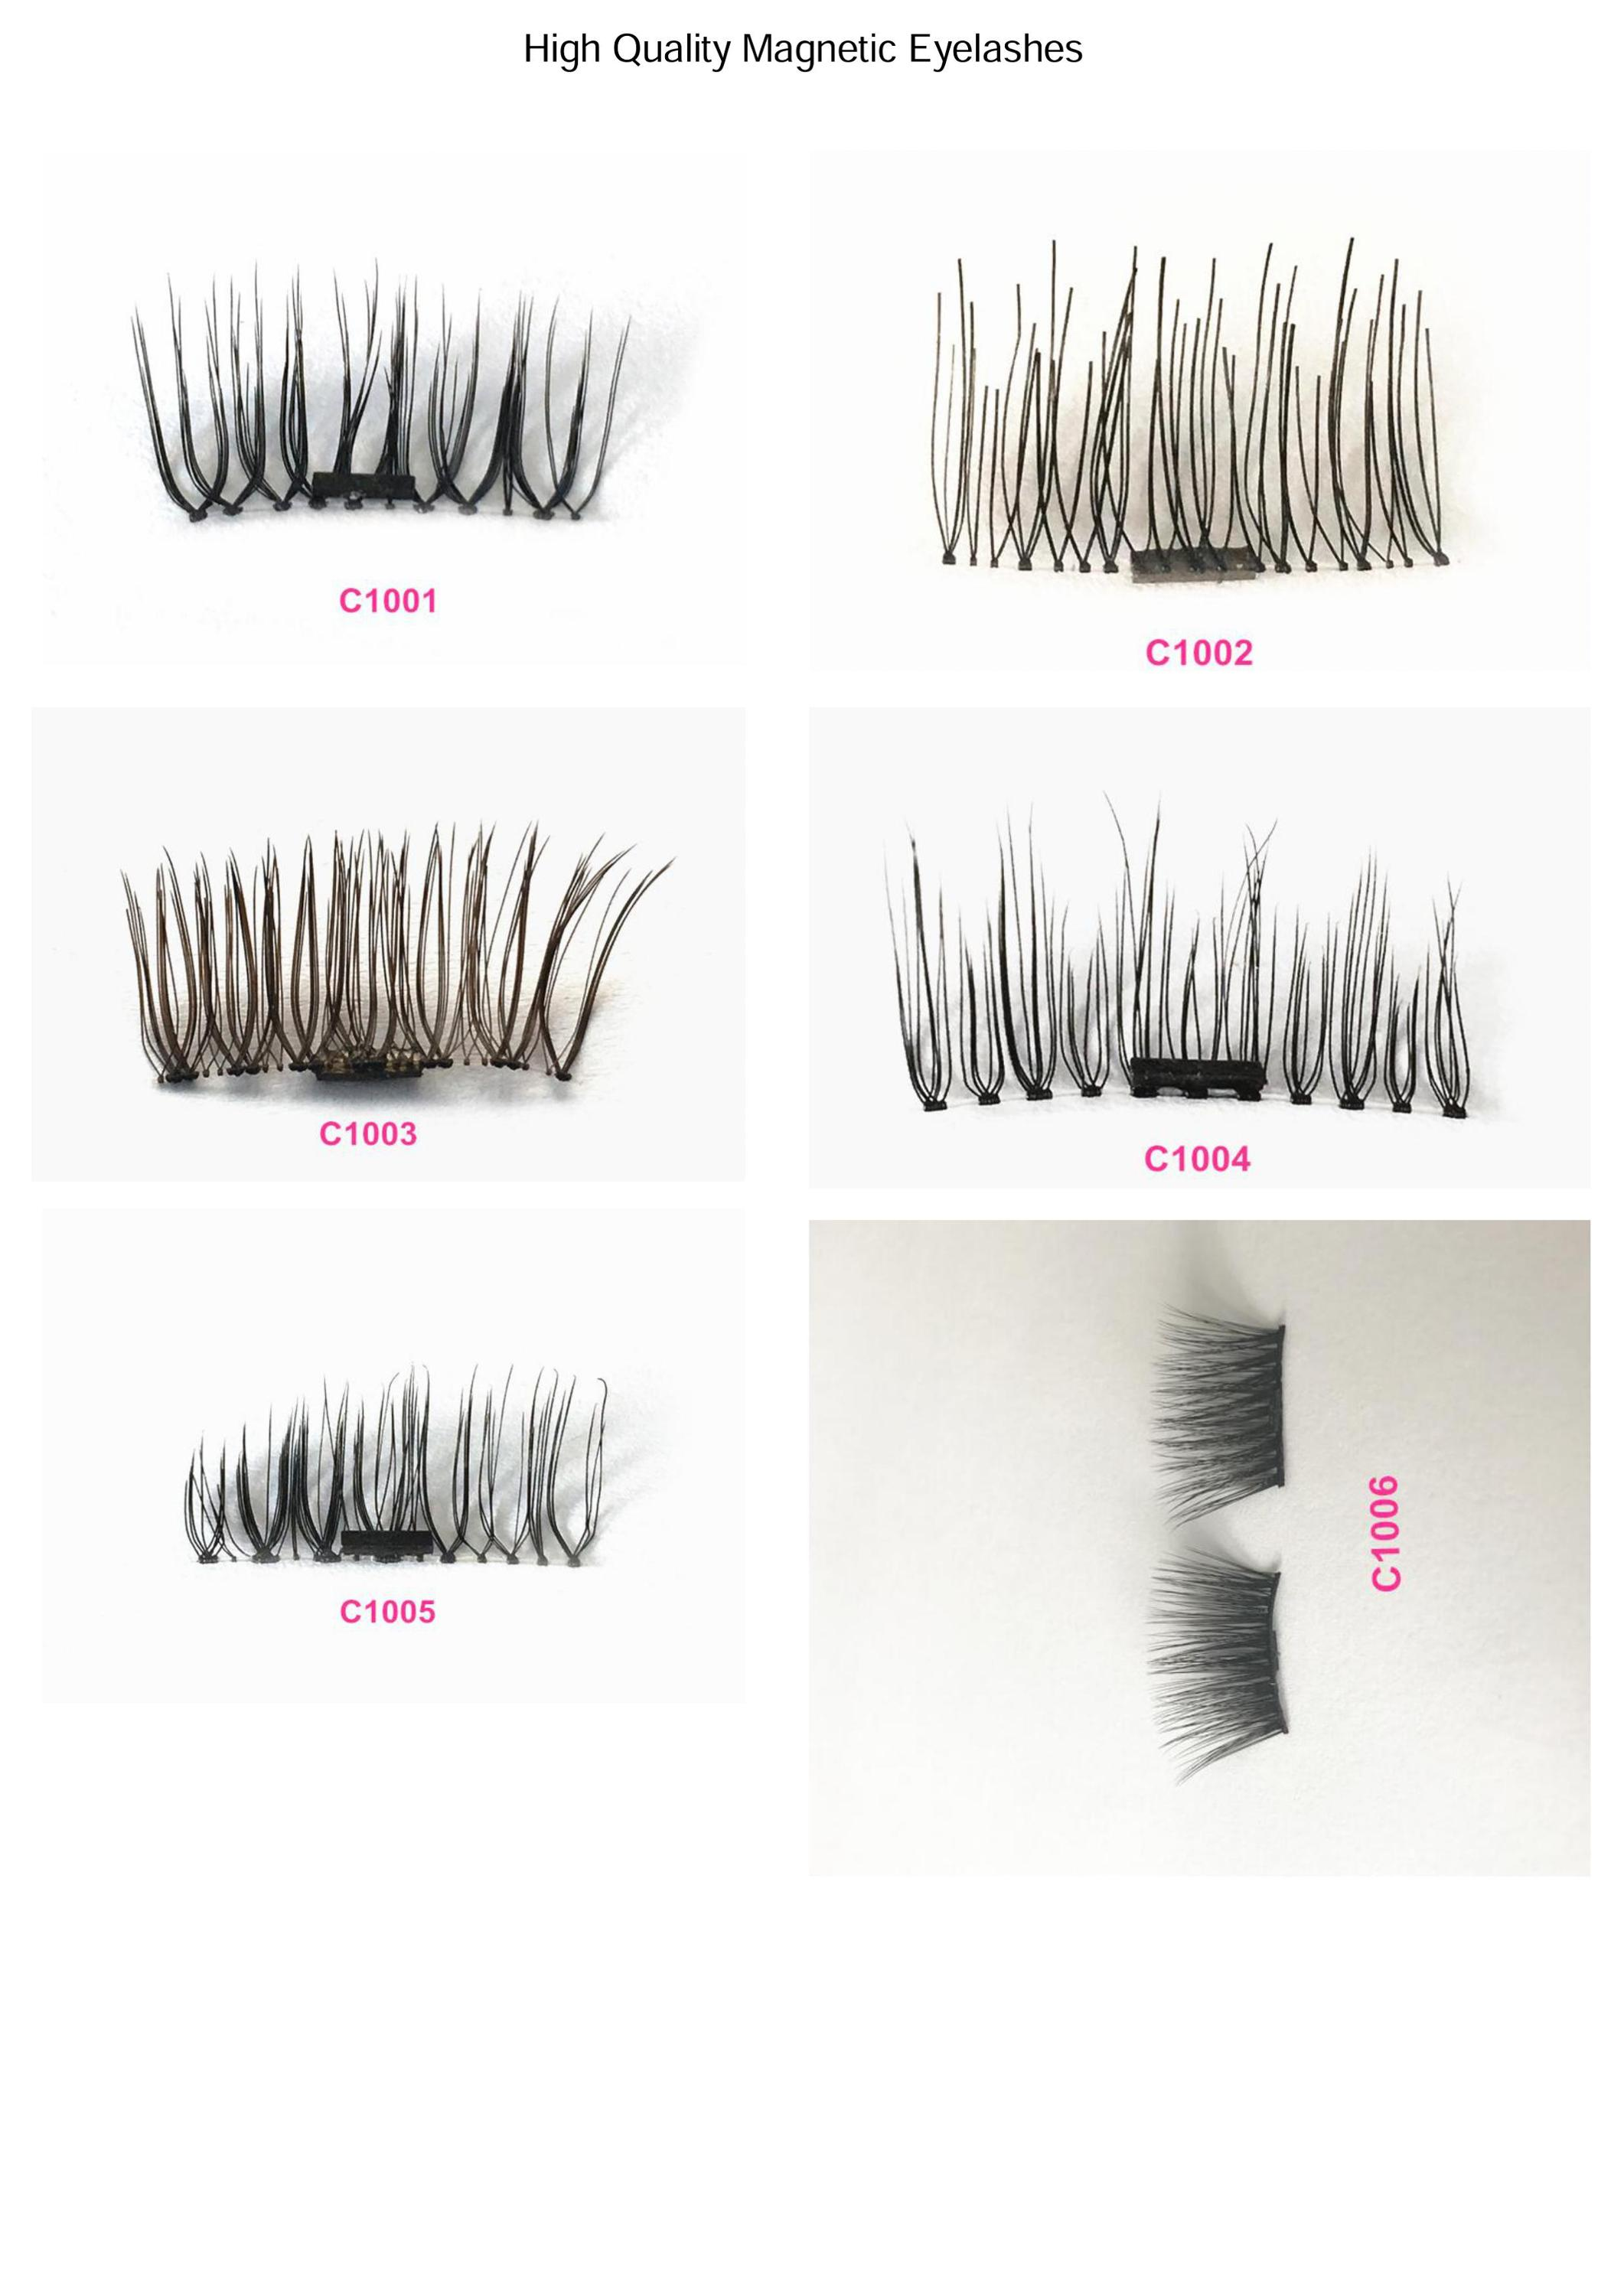 Easy Application Magnetic False Lashes Stay Put Without Any Glue